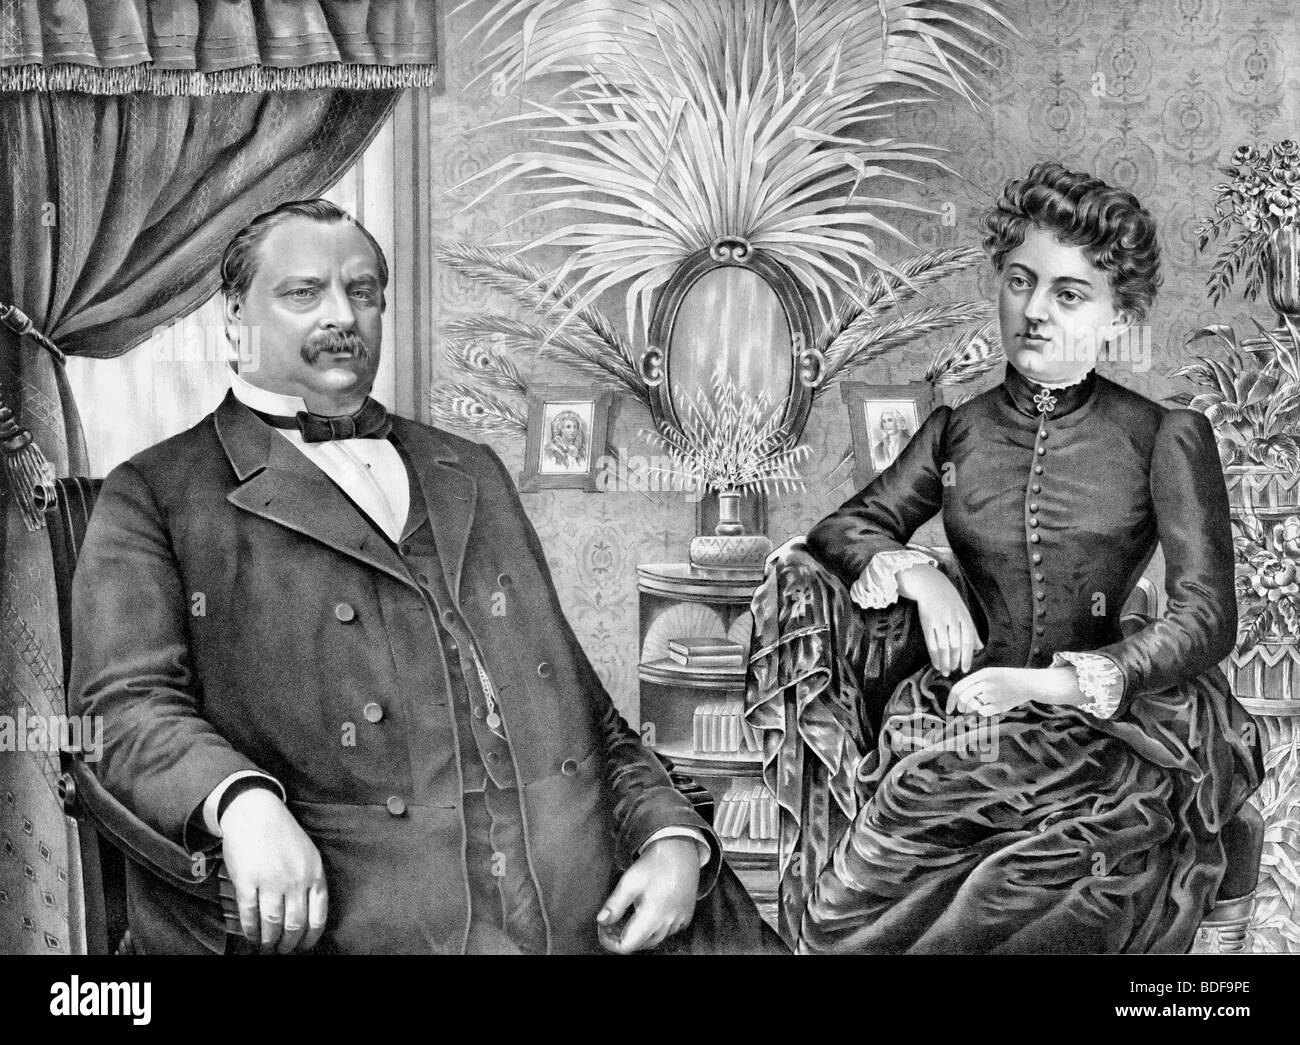 grover cleveland essay Grover clevelandchildhoodstephen grover cleveland was born on march 18, 1837, in new jersey he was the fifth of nine children grover was always a very busy child once when he was four, he ran into the road and fell under a horse drawn apple cart he.